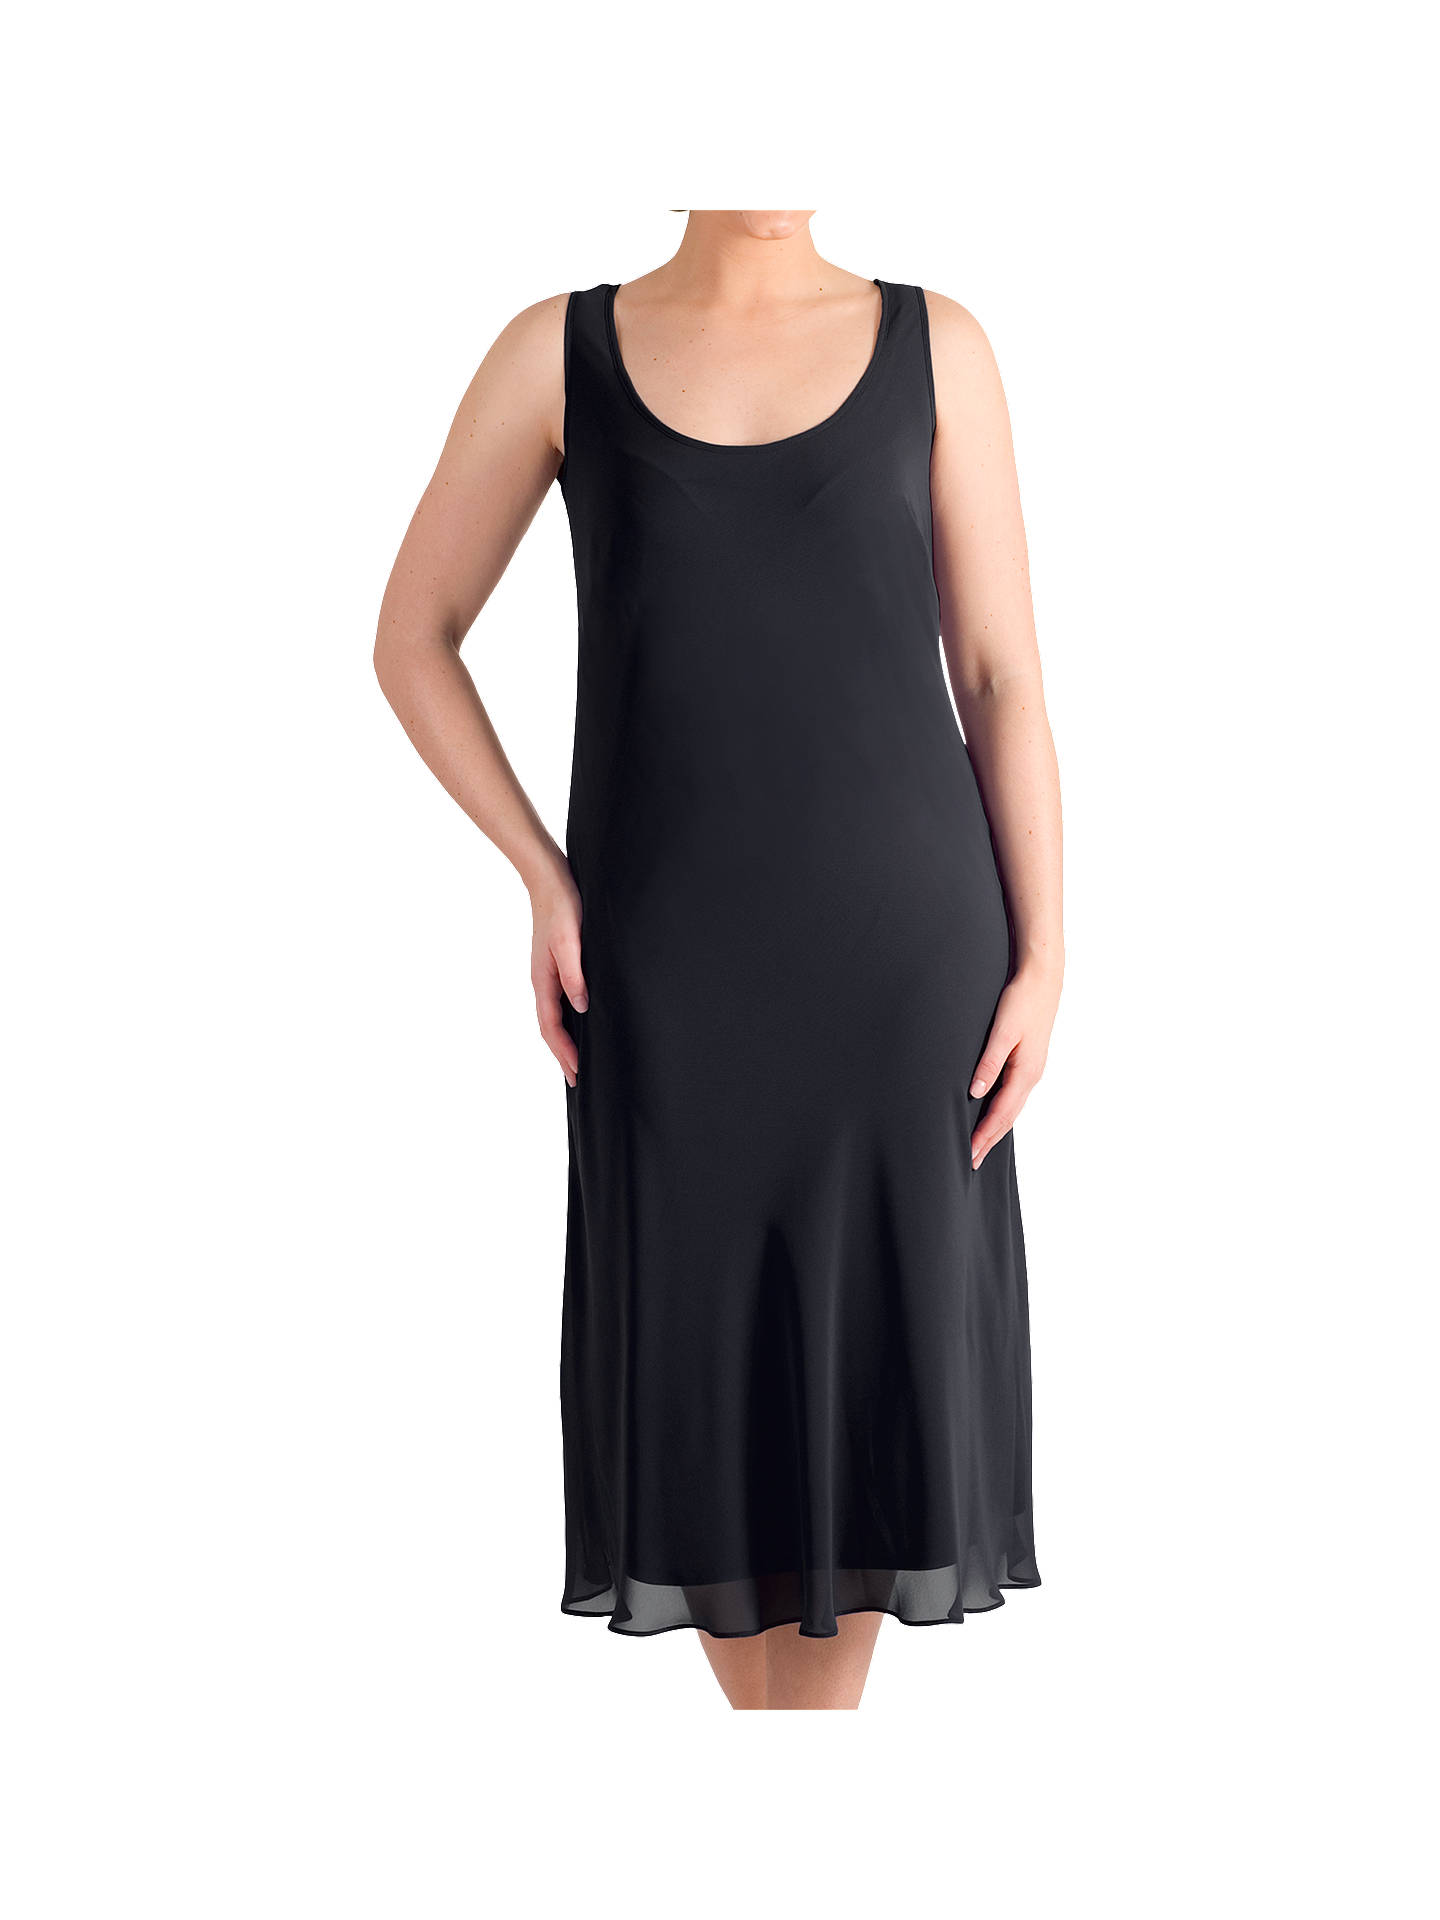 BuyChesca Bias Cut Chiffon Dress, Black, 12 Online at johnlewis.com